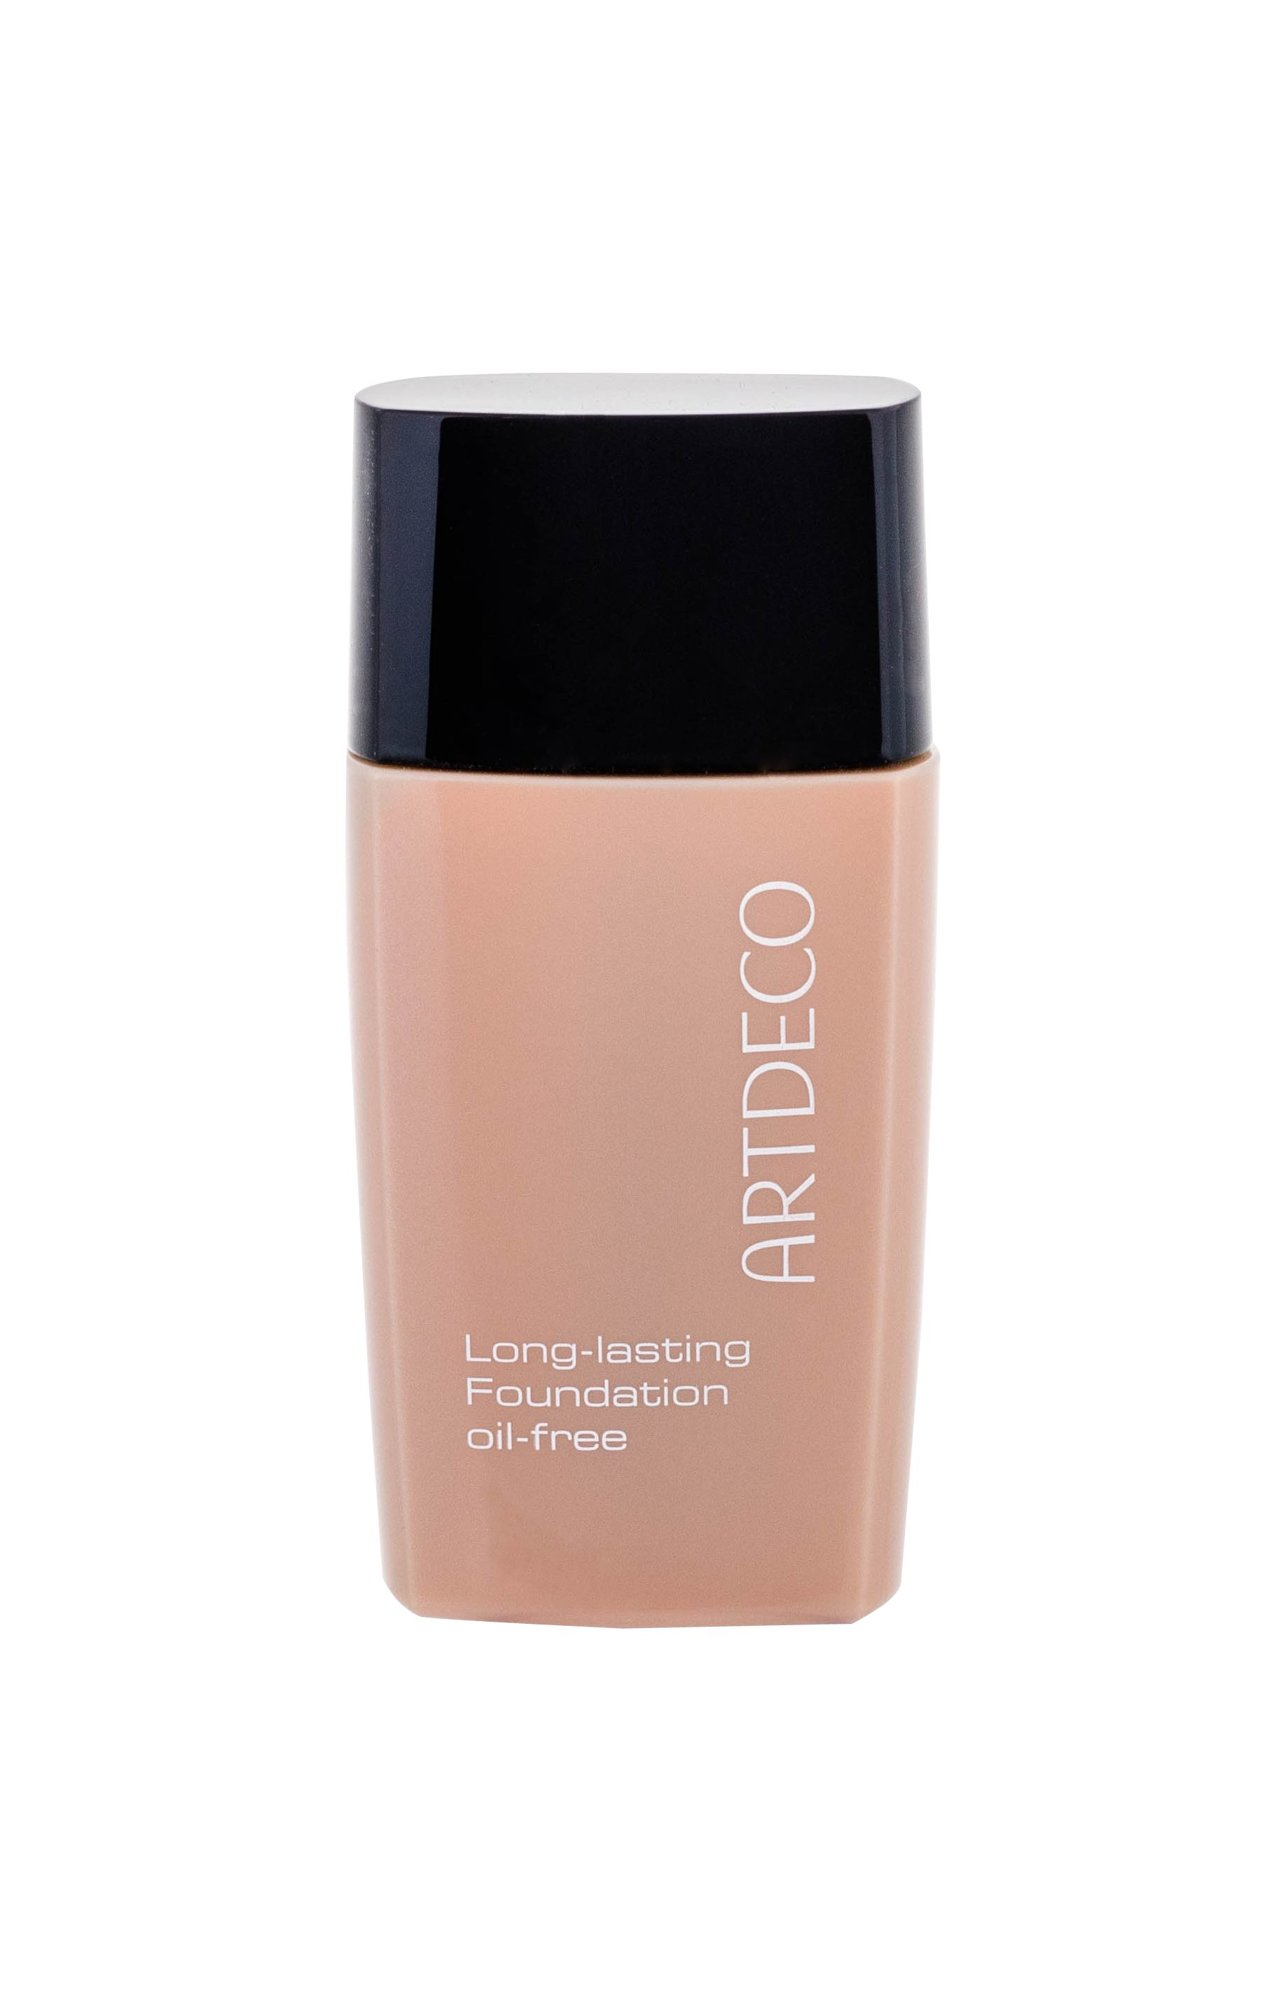 Artdeco Long Lasting Foundation Oil-Free Makeup 30ml 03 Vanilla Beige